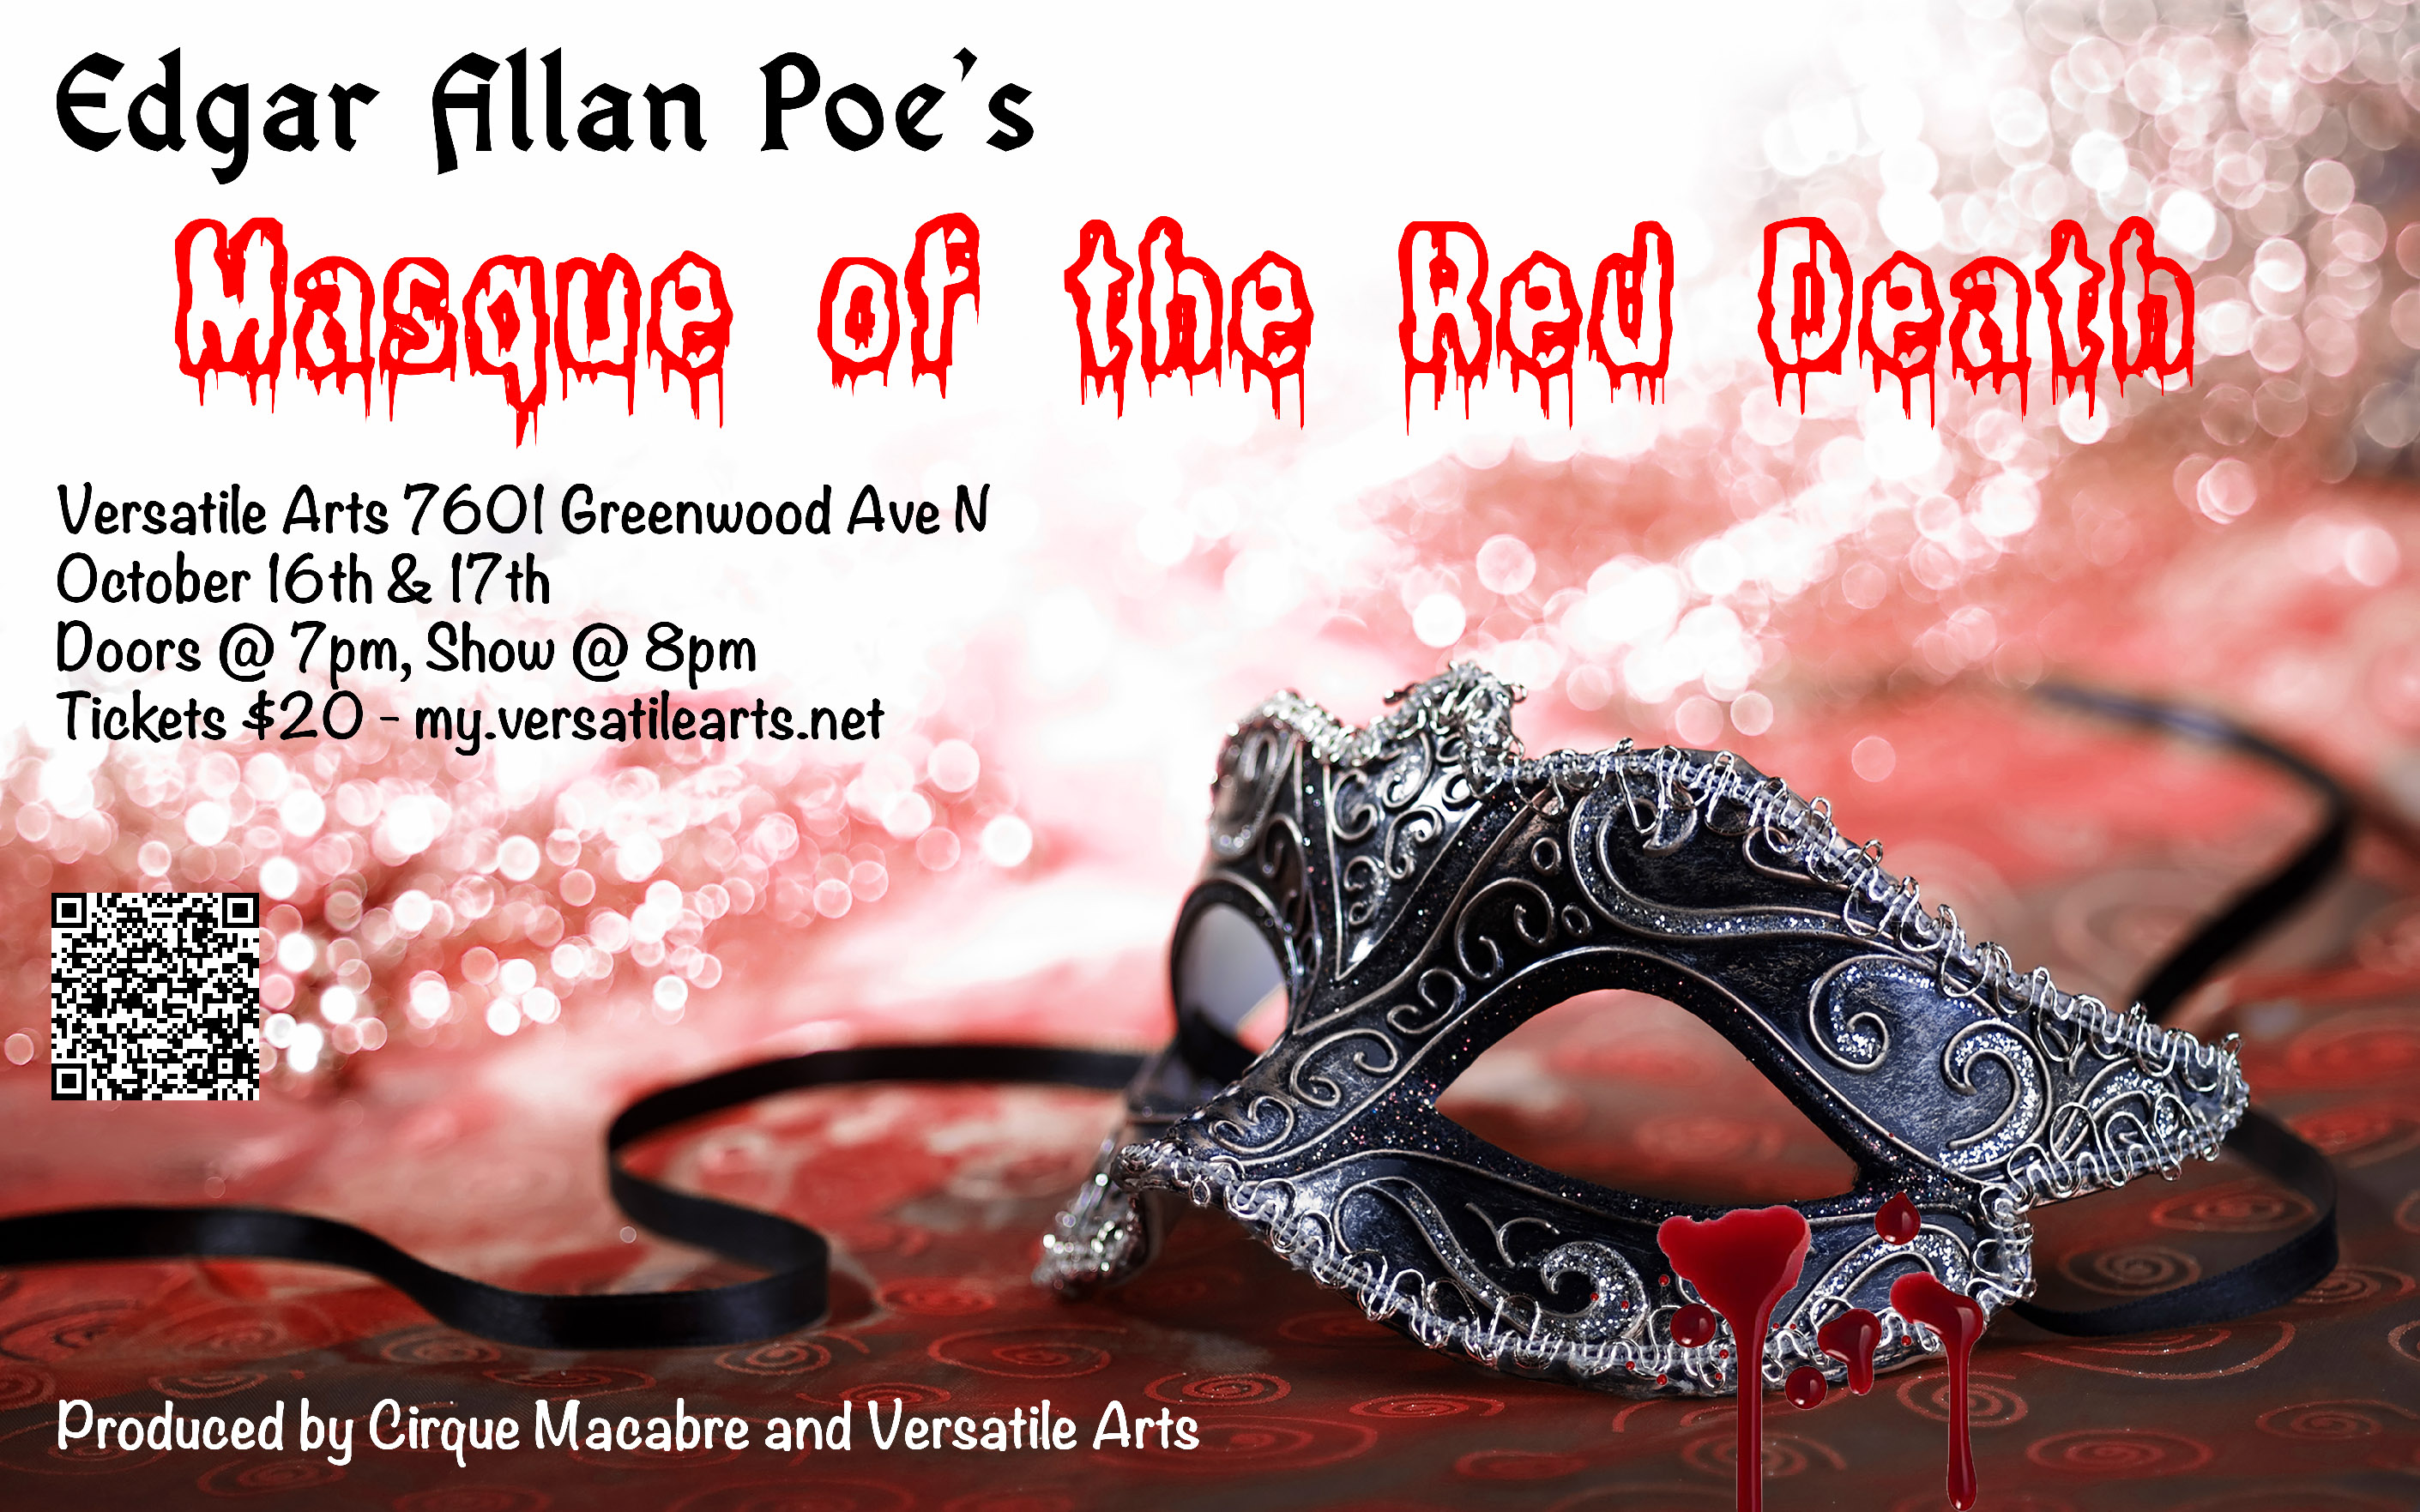 Edgar Allen Poe's Masque Of The Red Death Oct 16th and 17th at 8pm Versatile Arts Tickets $20 my.versatilearts.net